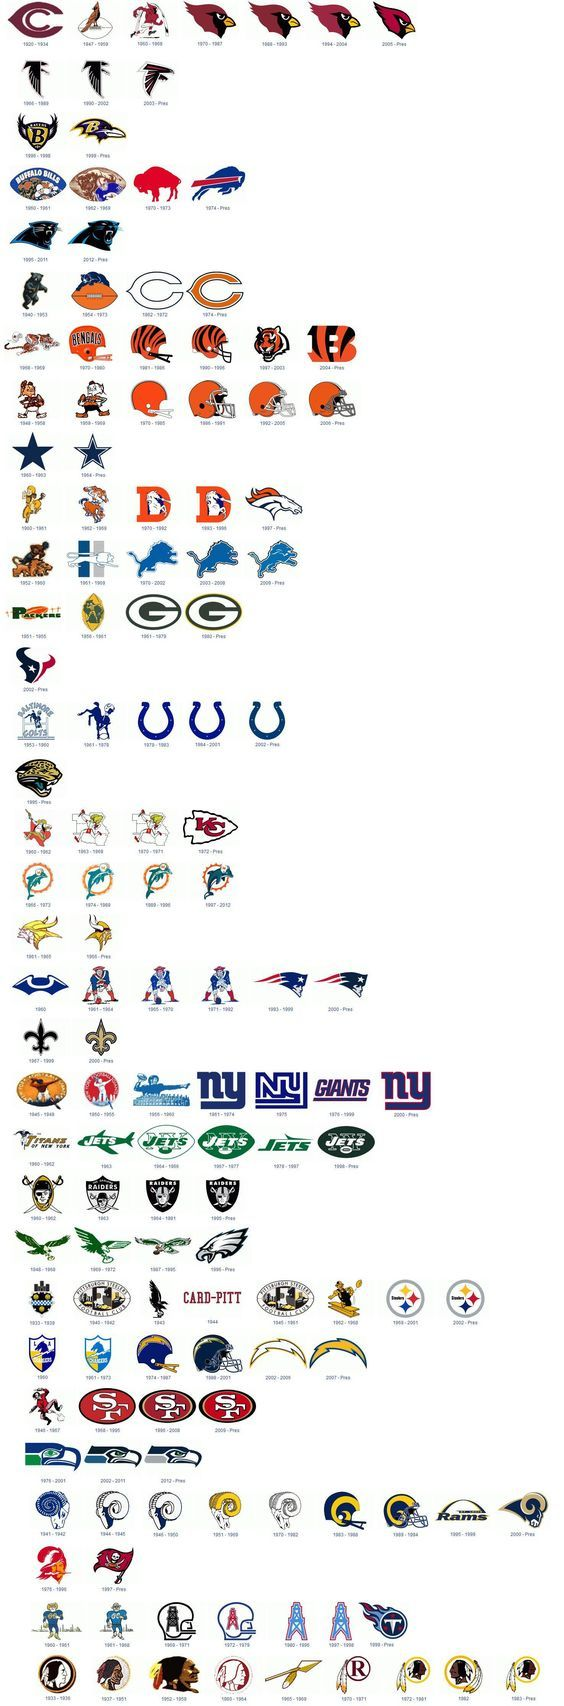 How to draw nfl logo page 2 - Nfl Logo Infographic To Help Keep Track Of The Slightest Changes In The Team Logos